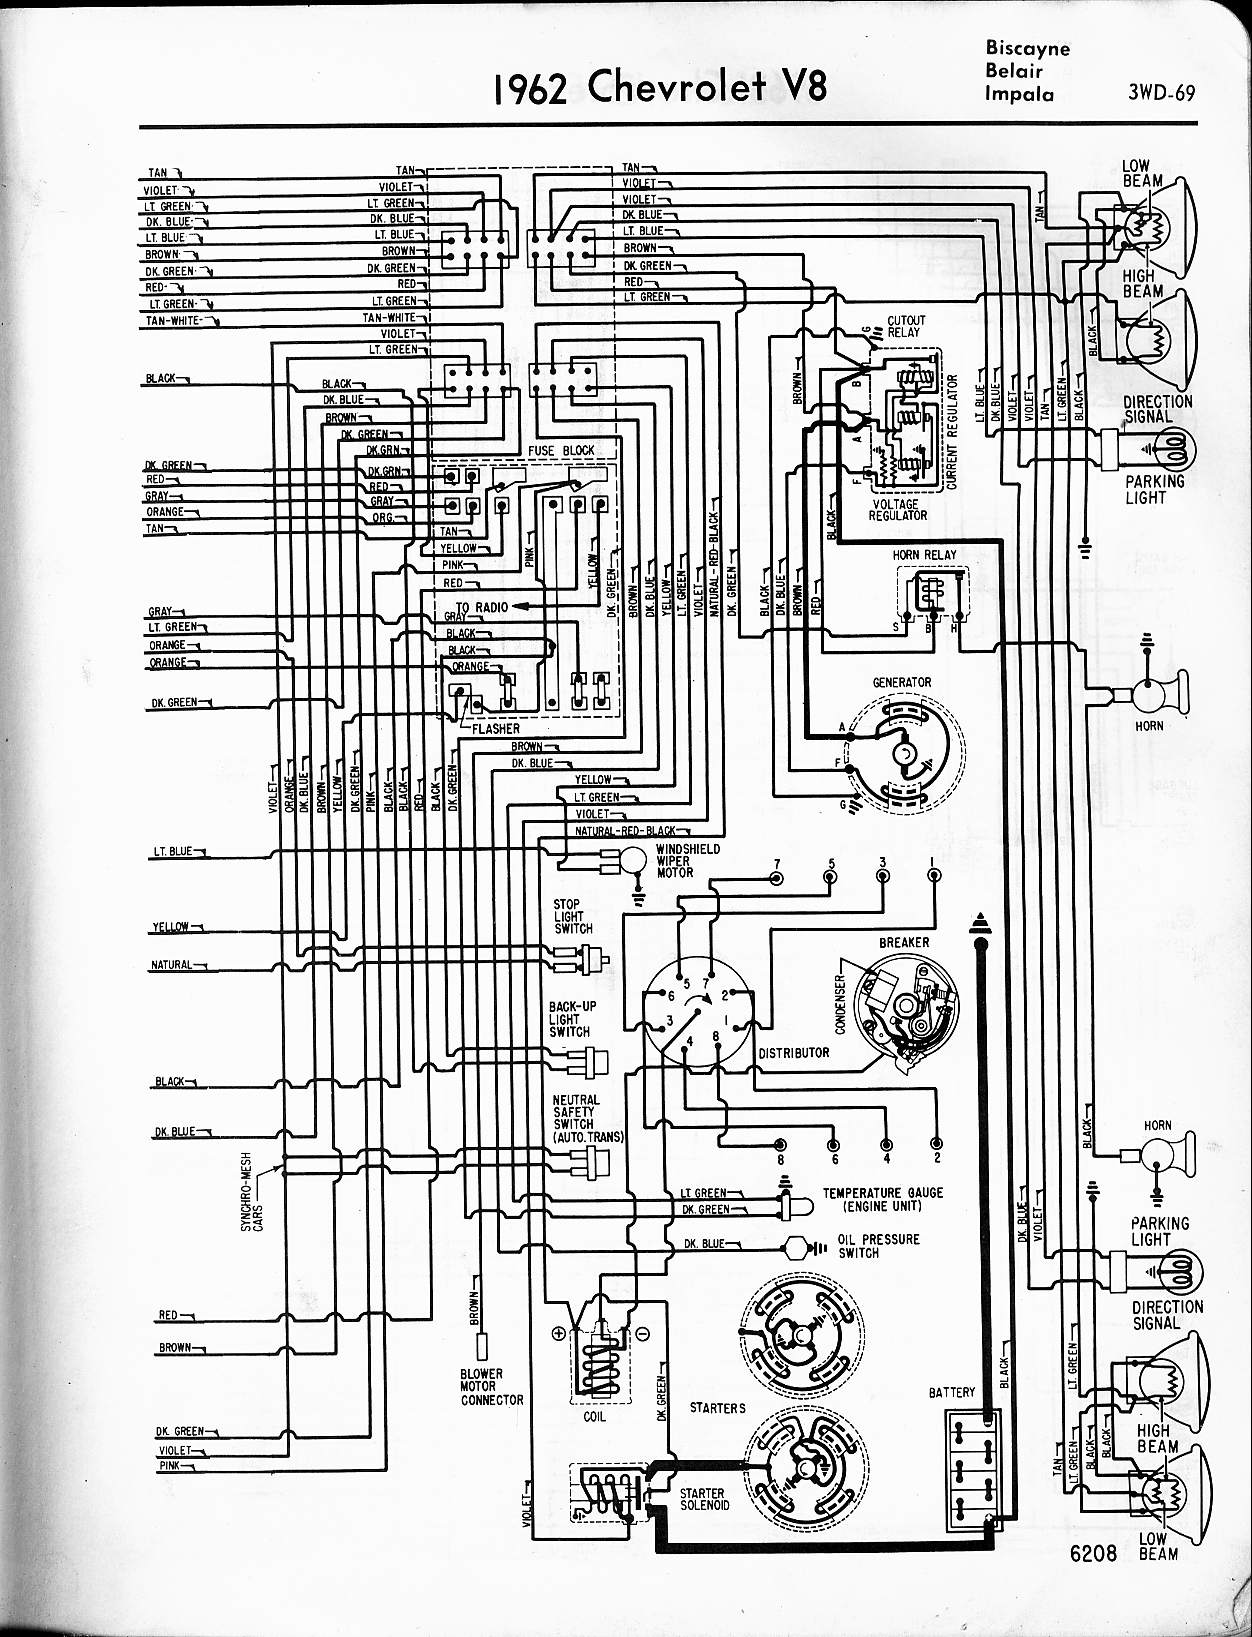 57 65 chevy wiring diagrams 2003 chevy impala wiring diagram 1962 v8  biscayne, belair,